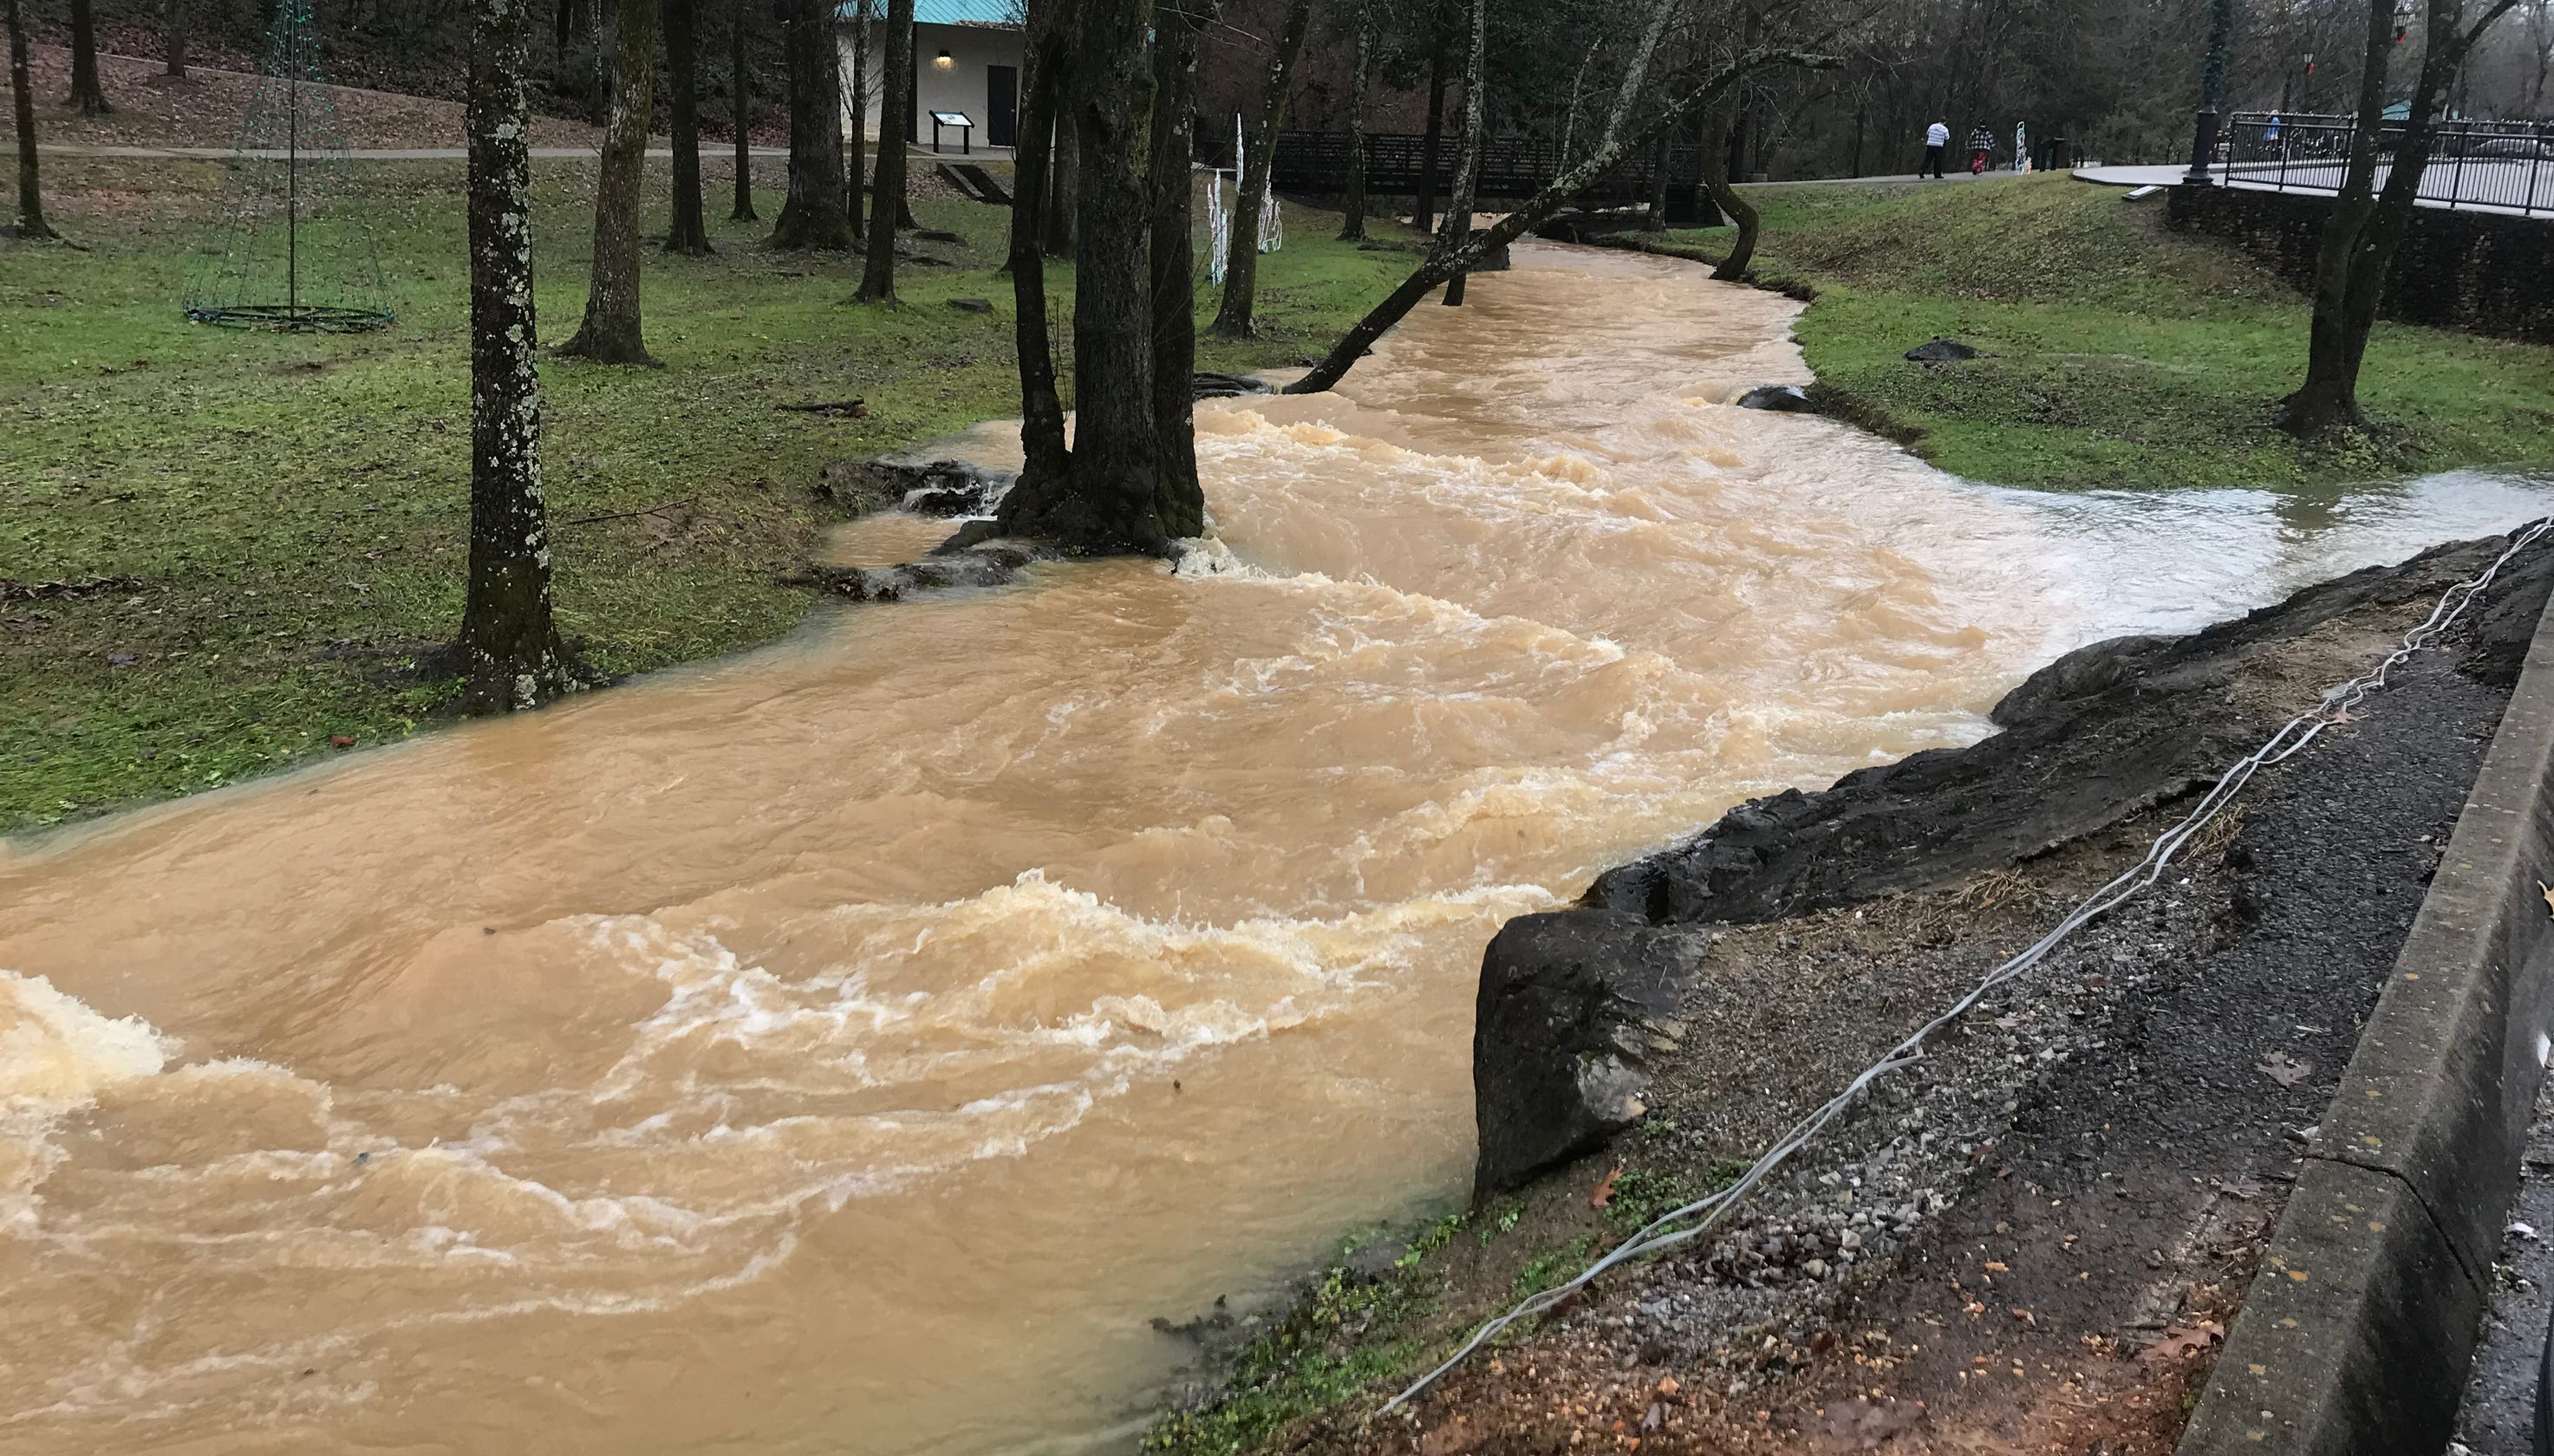 Heavy rain brings flooding to Founders Park in Farragut